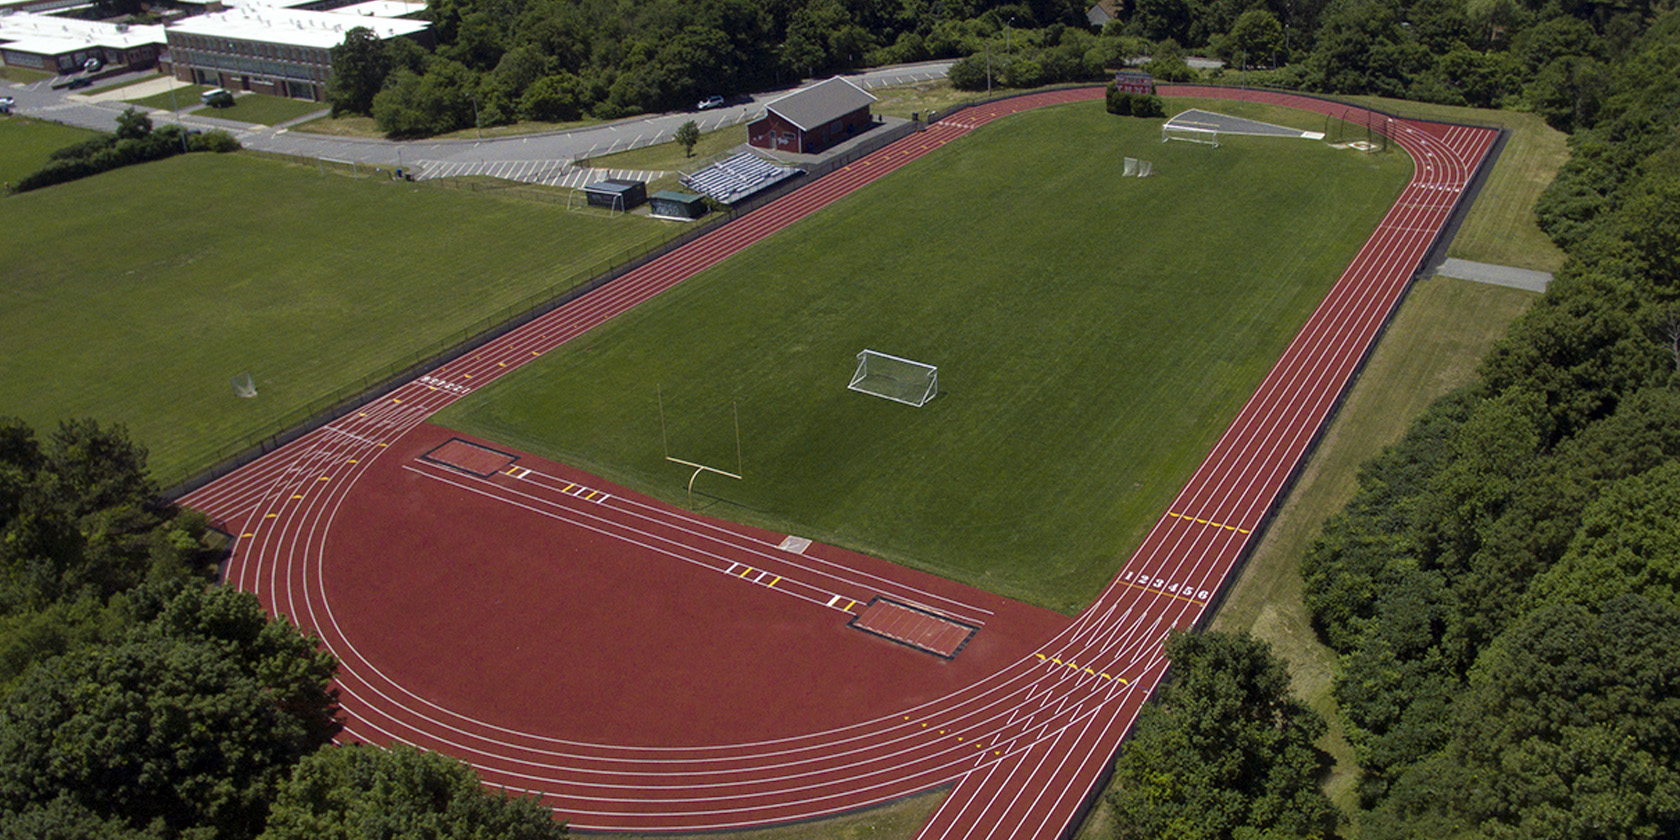 Village School Track and Field, Marblehead, Massachsusetts